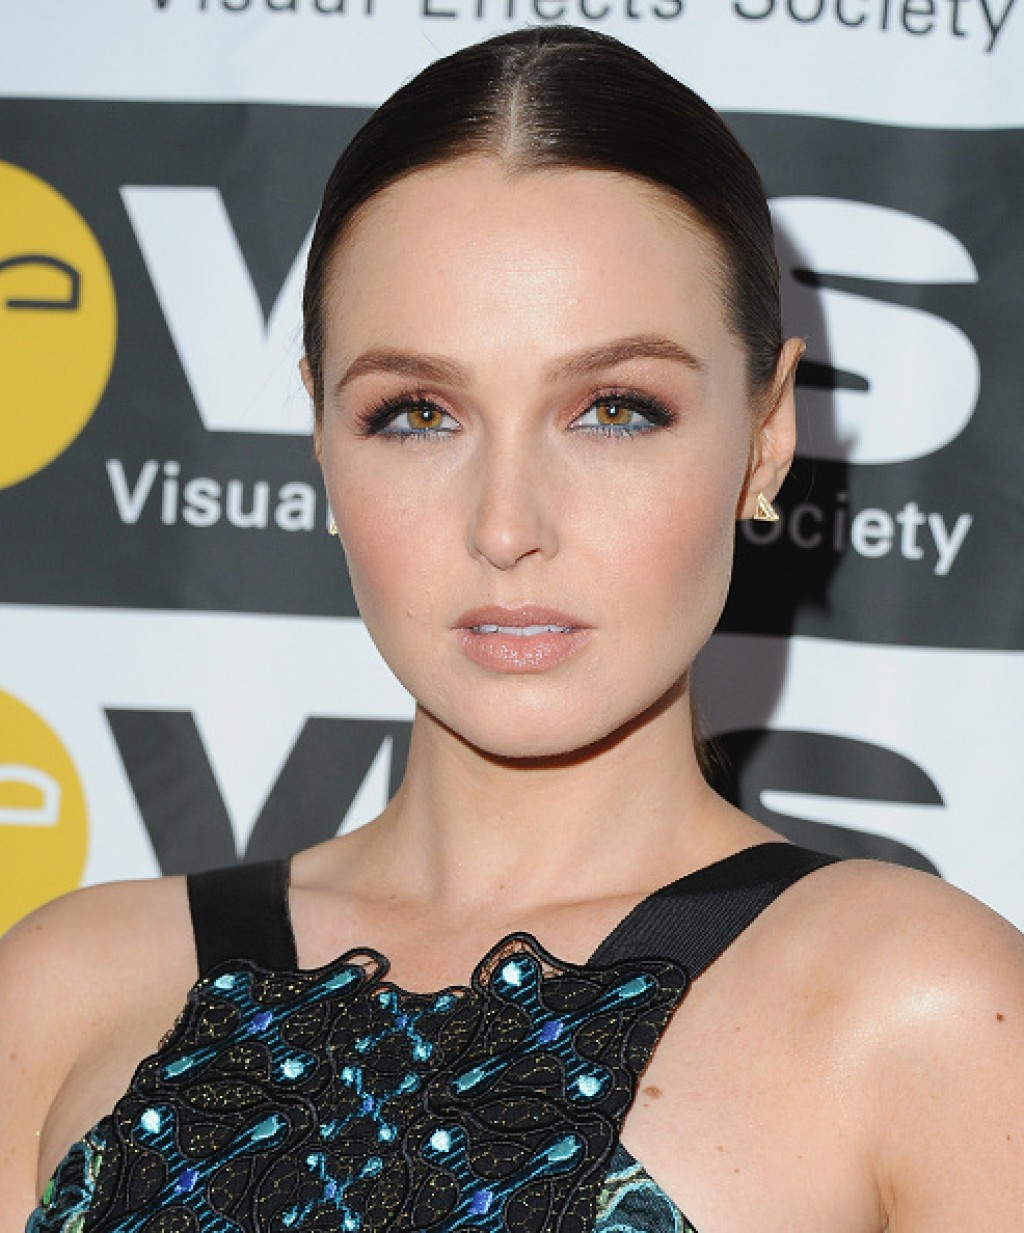 2016-VES-Awards-Camilla-Luddington-1024x1233